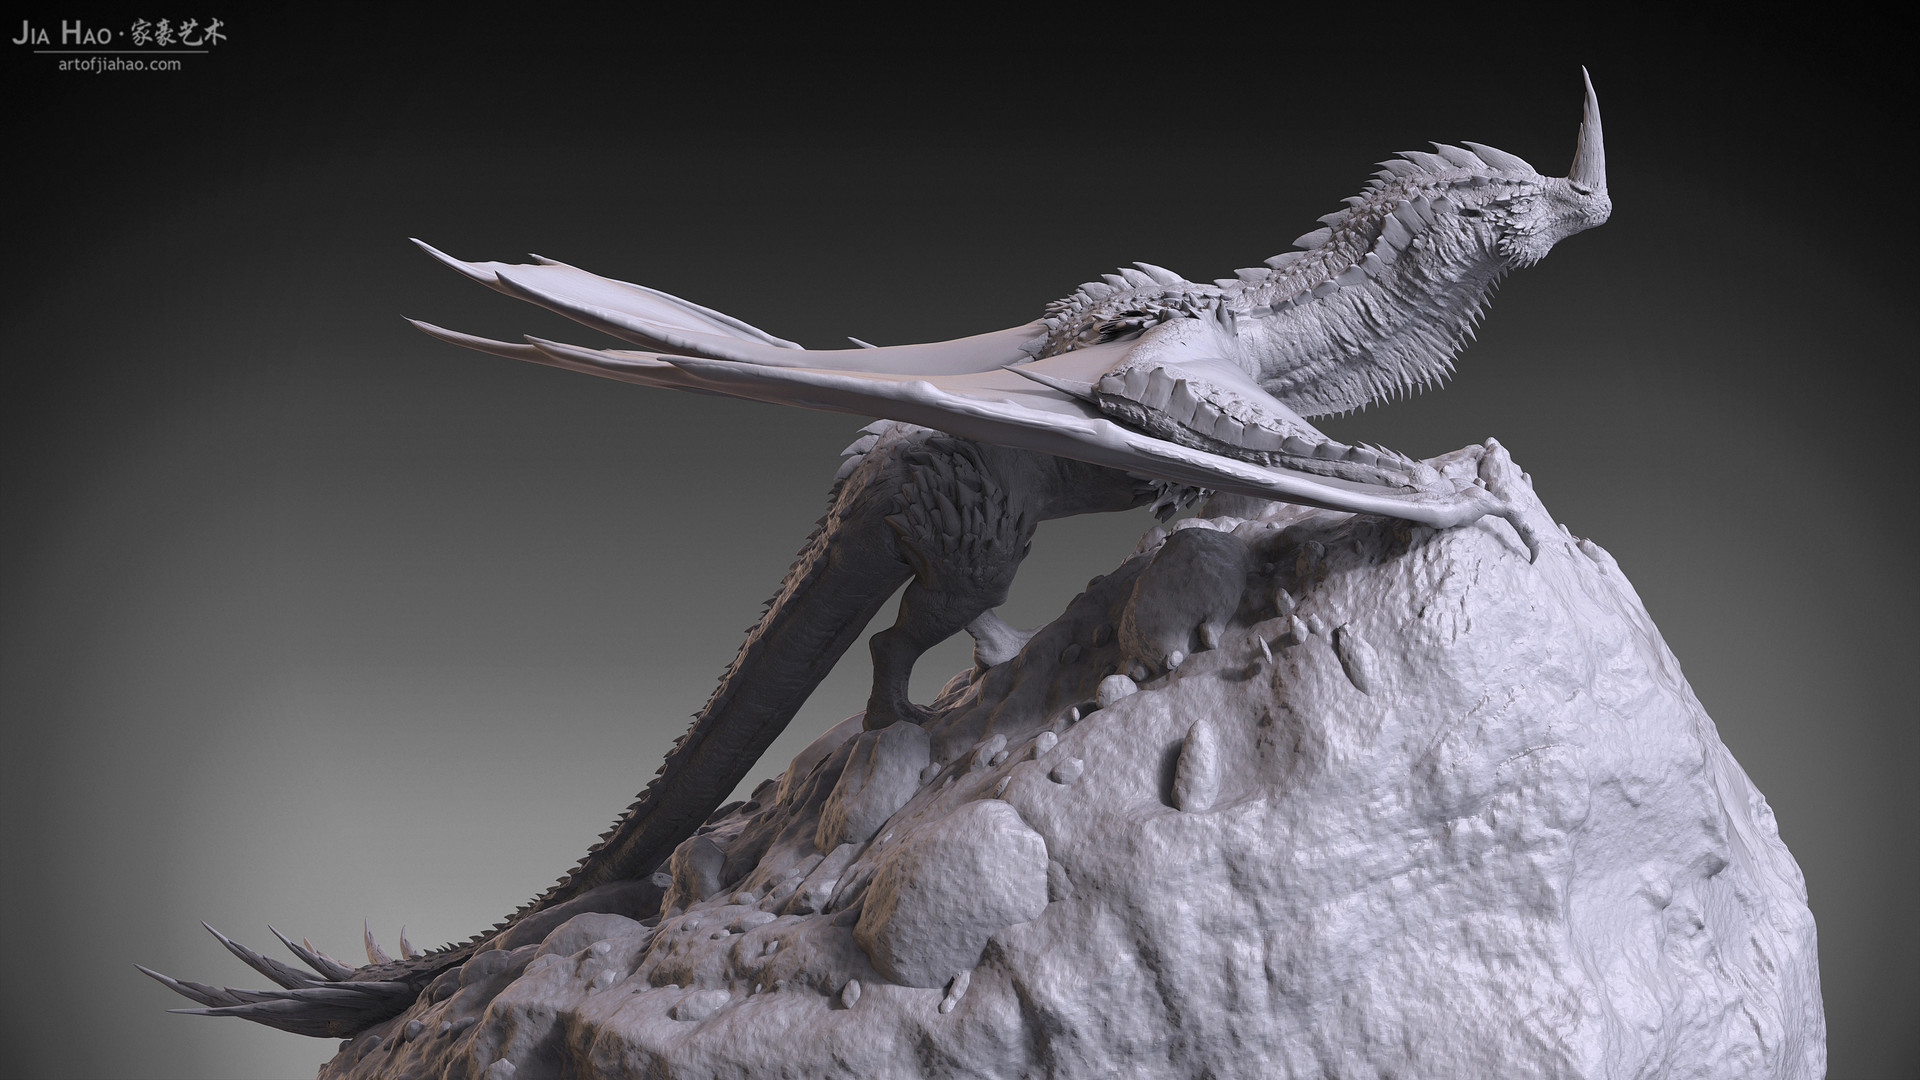 Jia hao 2017 horneddragon digitalsculpting 06